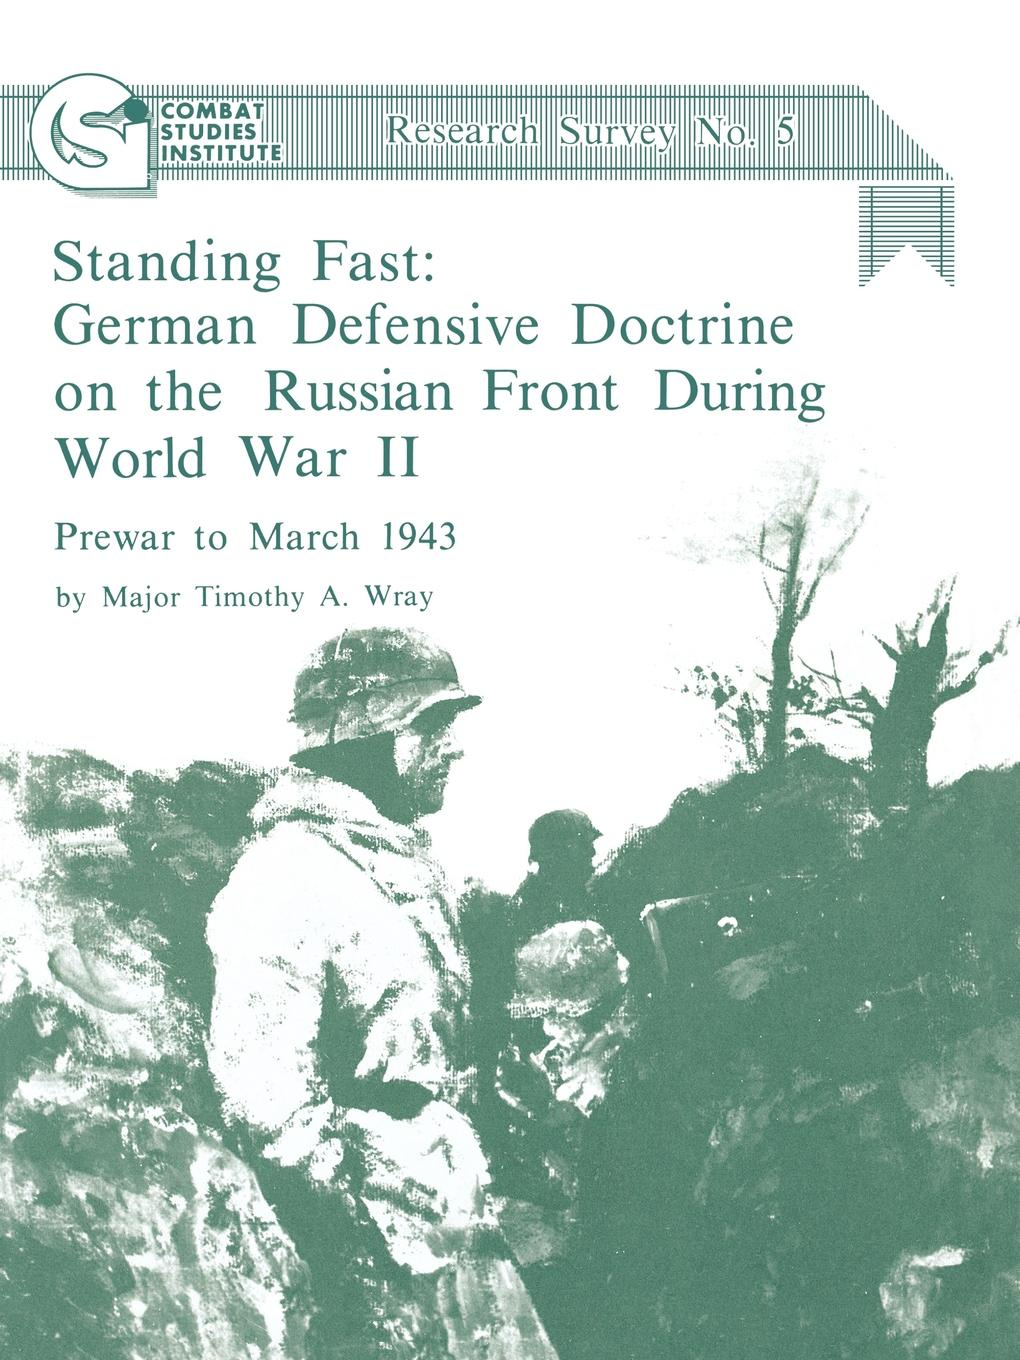 Timothy A. Wray, Combat Studies Institute Standing Fast. German Defensive Doctrine on the Russian Front During World War II; Prewar to March 1943 (Combat Studies Institute Research Survey No. 5) new german review new german review a journal of germanic studies volume 25 2011